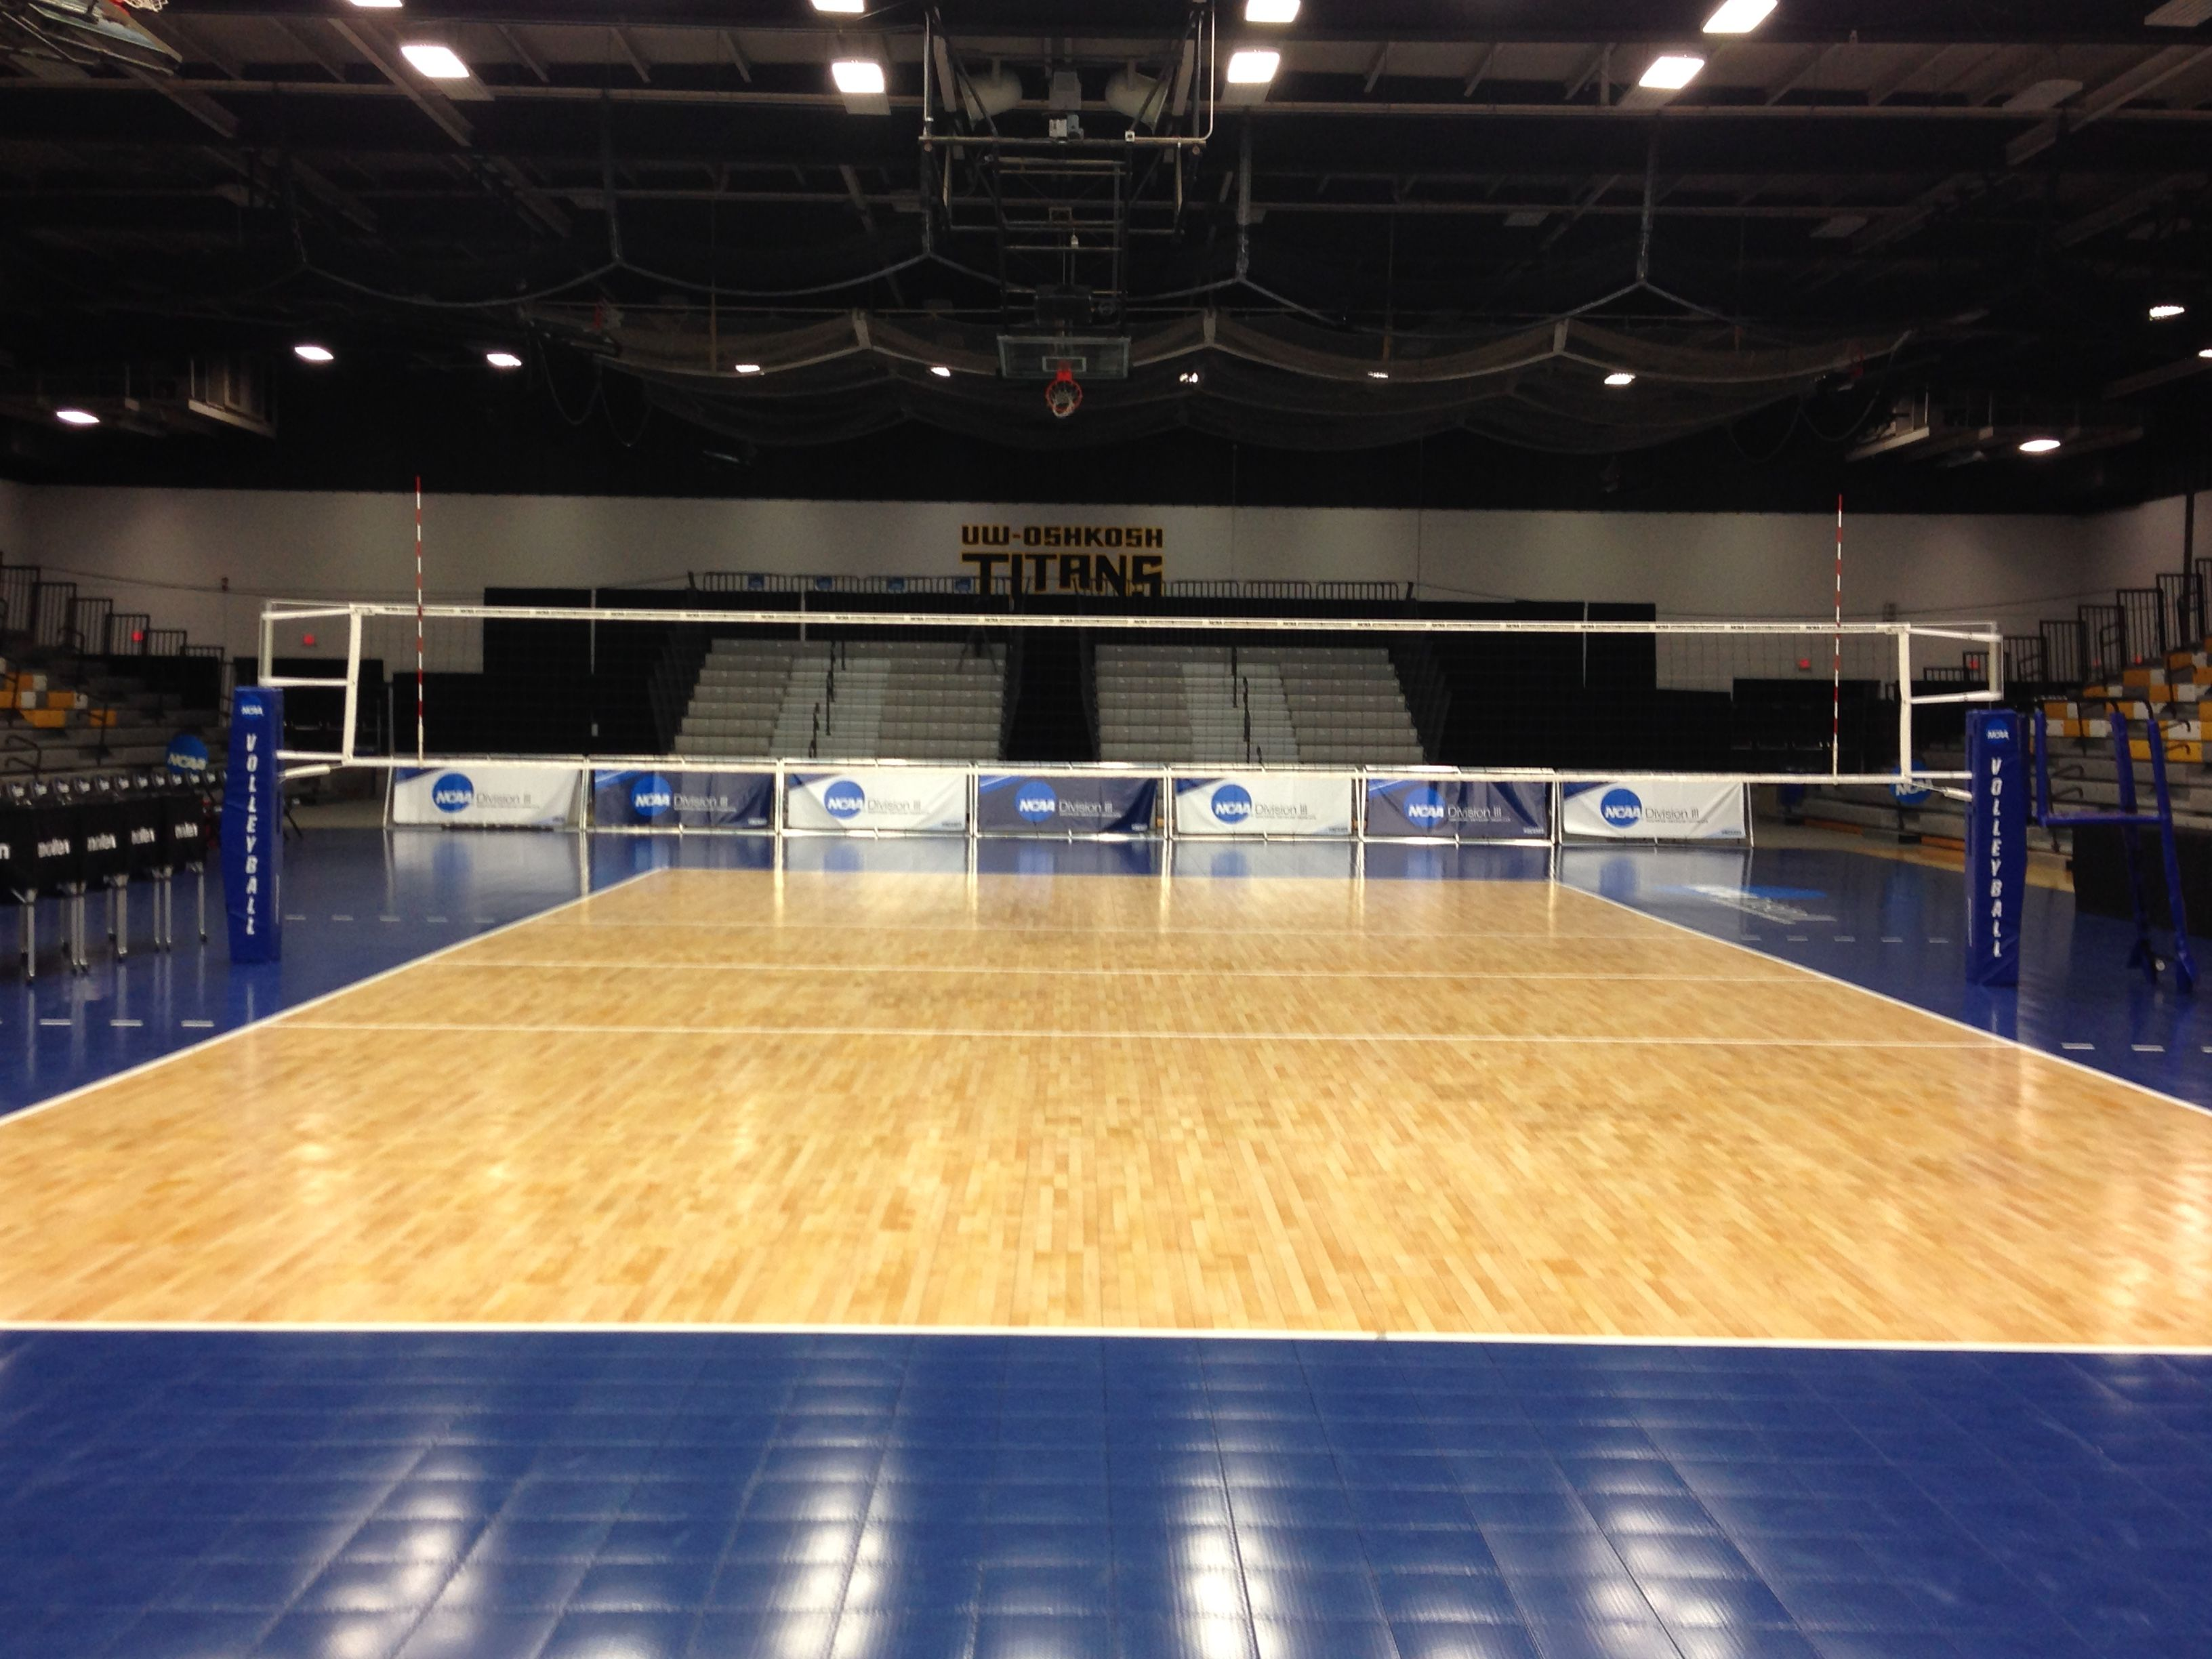 At The Center Of The Ncaa Division Iii Women S Volleyball Championship Ncaavb 2016